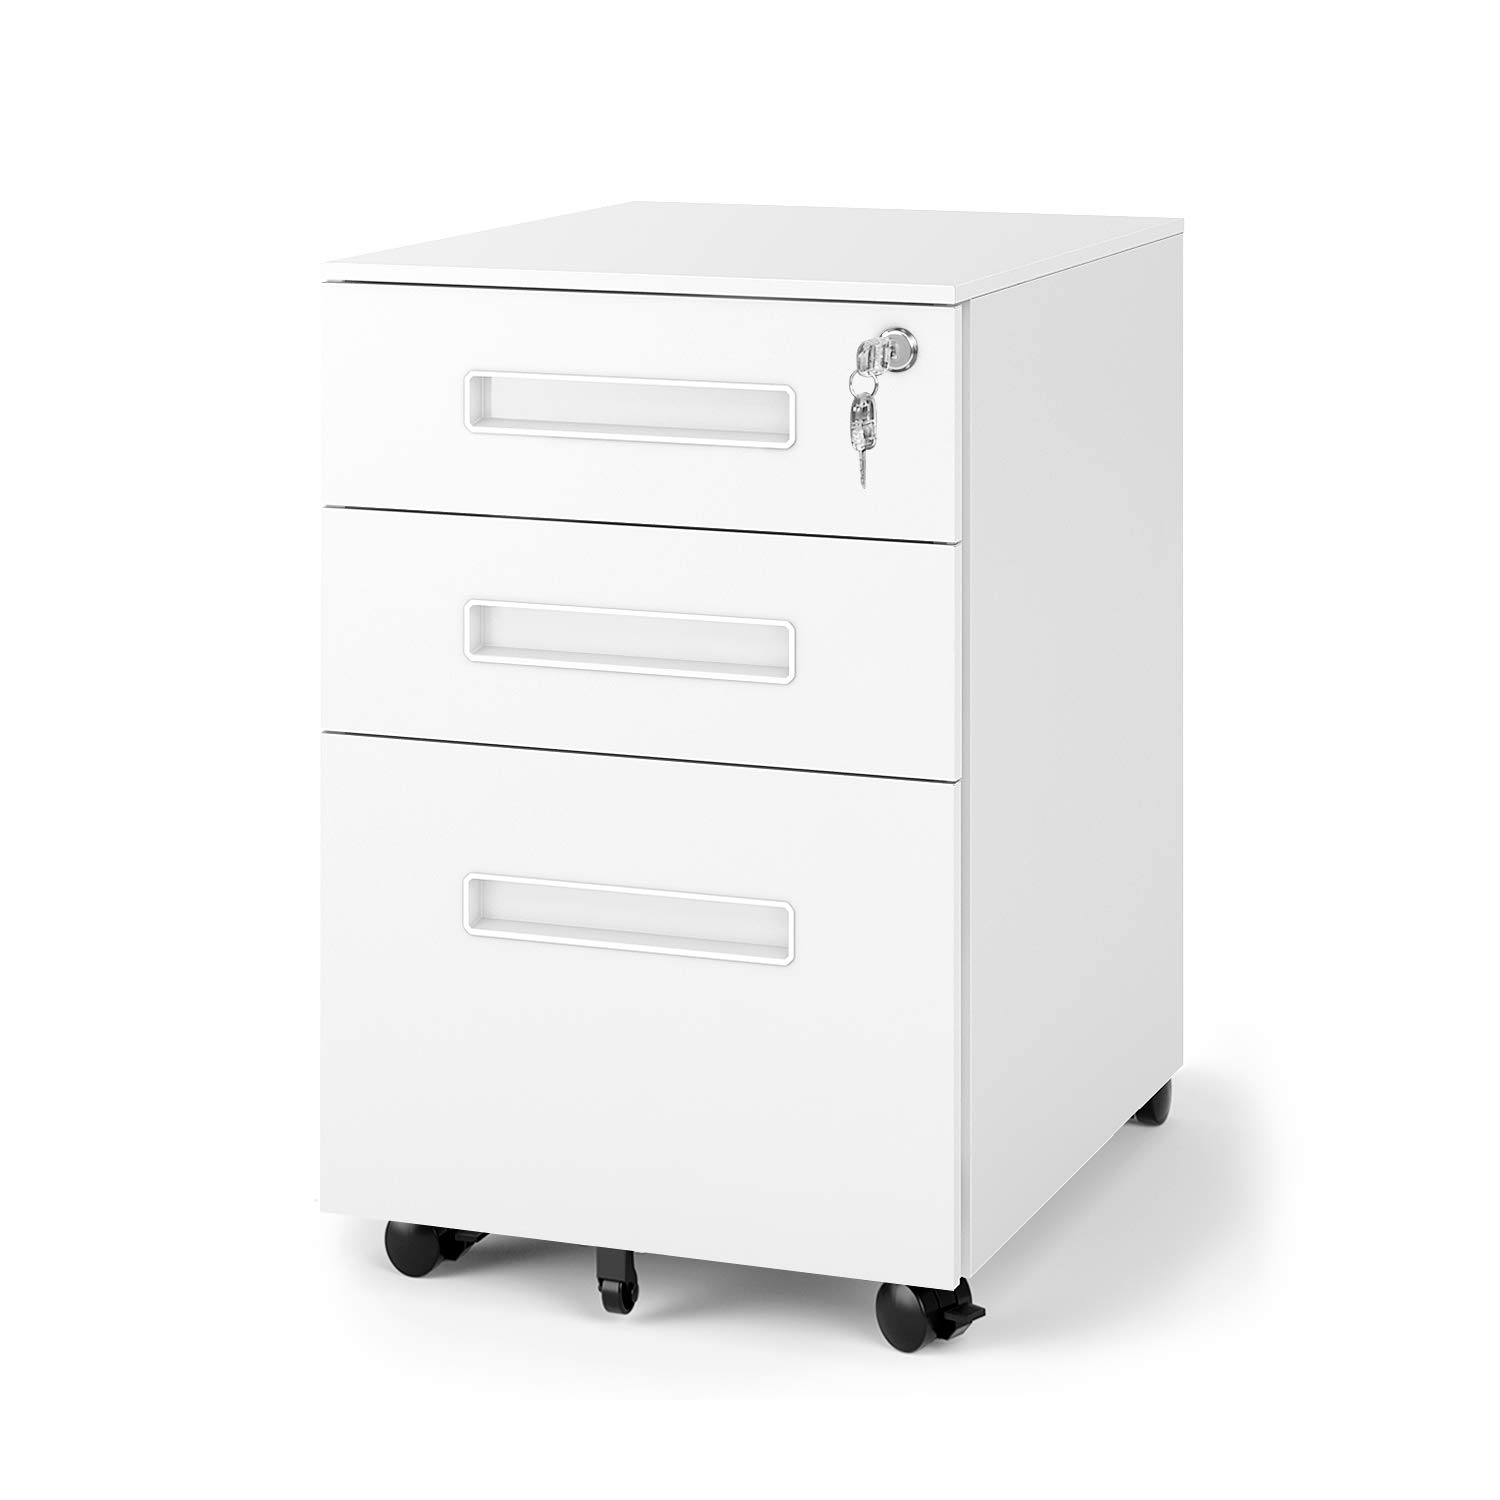 DEVAISE 3-Drawer Mobile Pedestal File Cabinet with Lock, Legal/Letter Size, White by DEVAISE